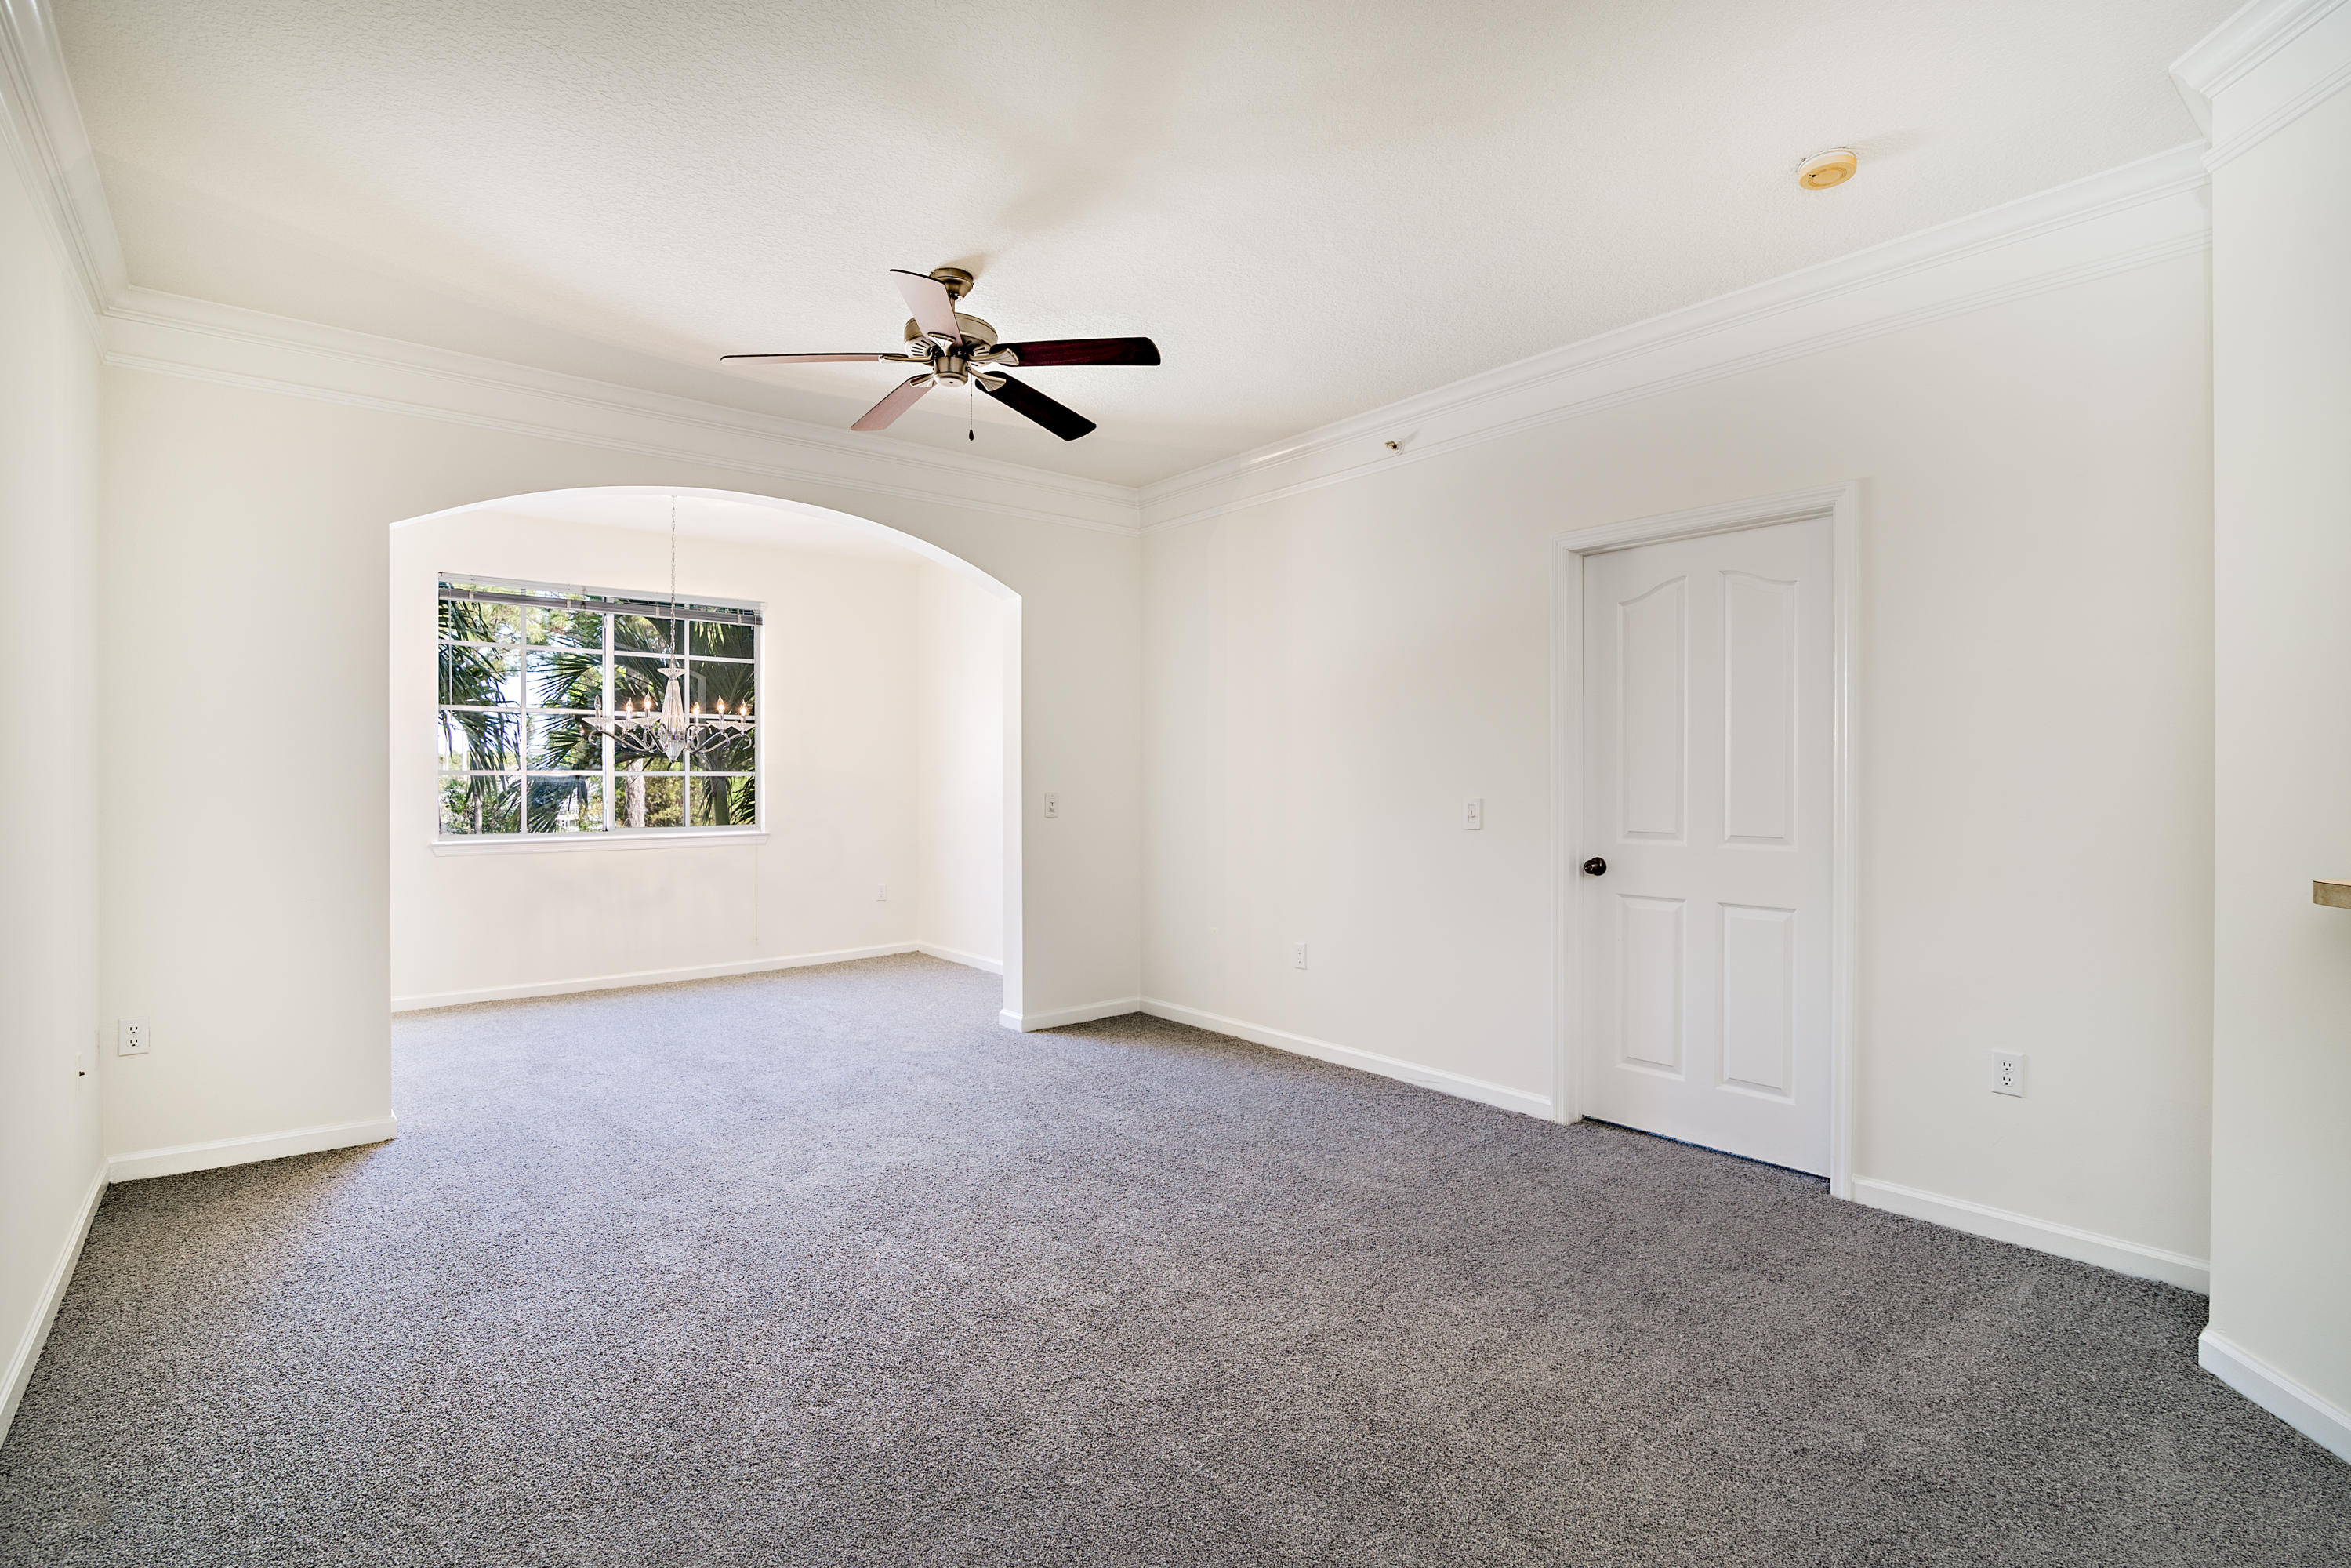 7205 Myrtlewood Circle, Palm Beach Gardens, Florida 33418, 2 Bedrooms Bedrooms, ,2 BathroomsBathrooms,Condo/Coop,For Sale,Fiore at the Gardens,Myrtlewood,2,RX-10379676